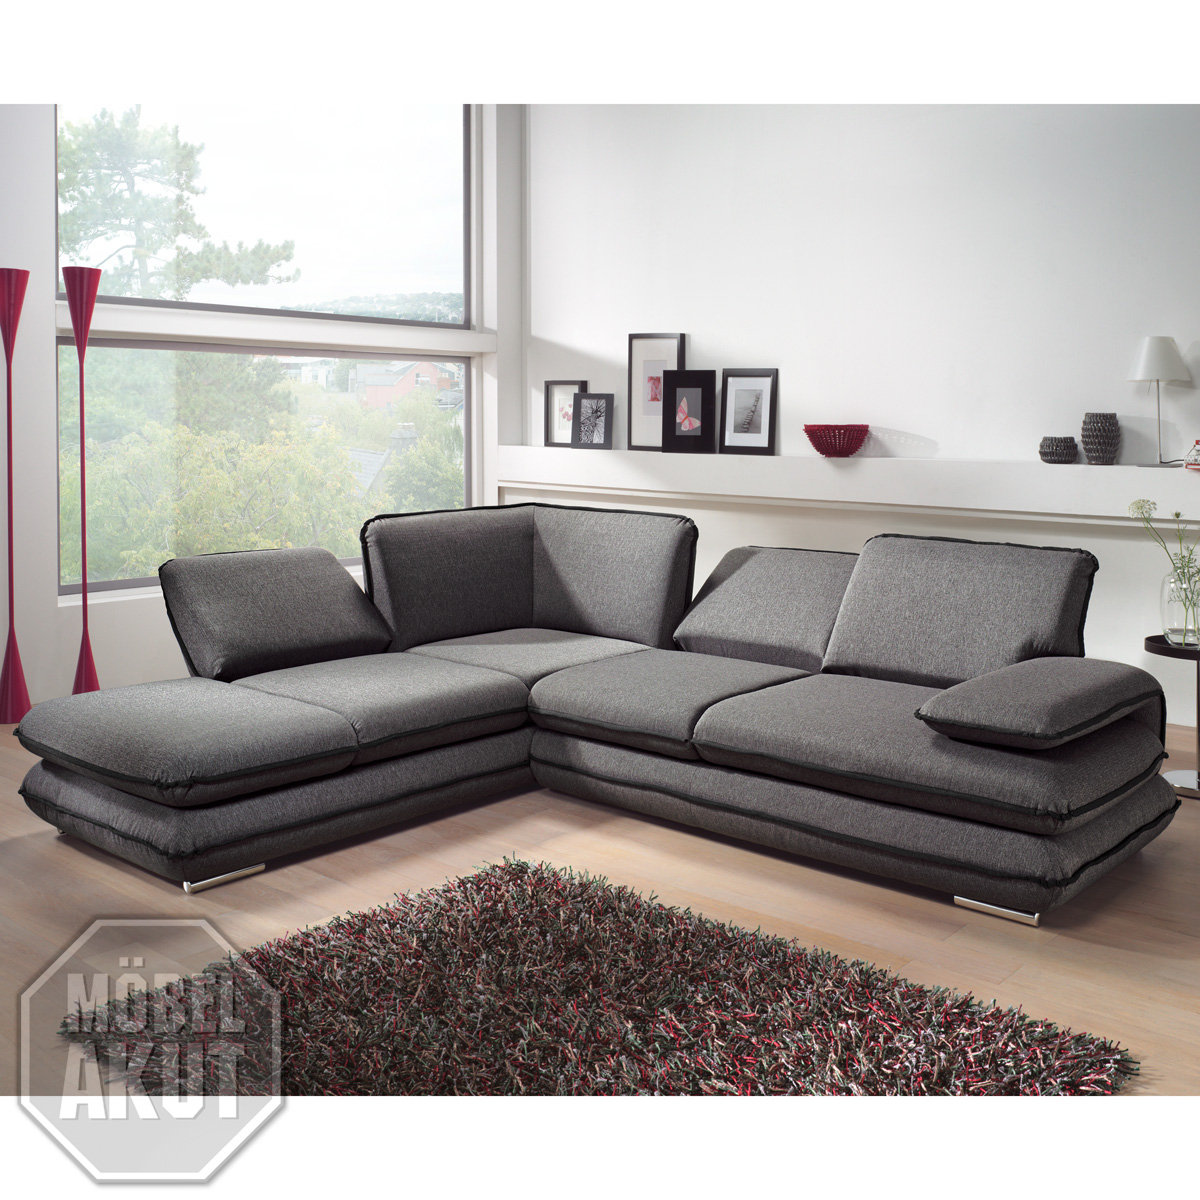 ecksofa leder relaxfunktion inspirierendes. Black Bedroom Furniture Sets. Home Design Ideas